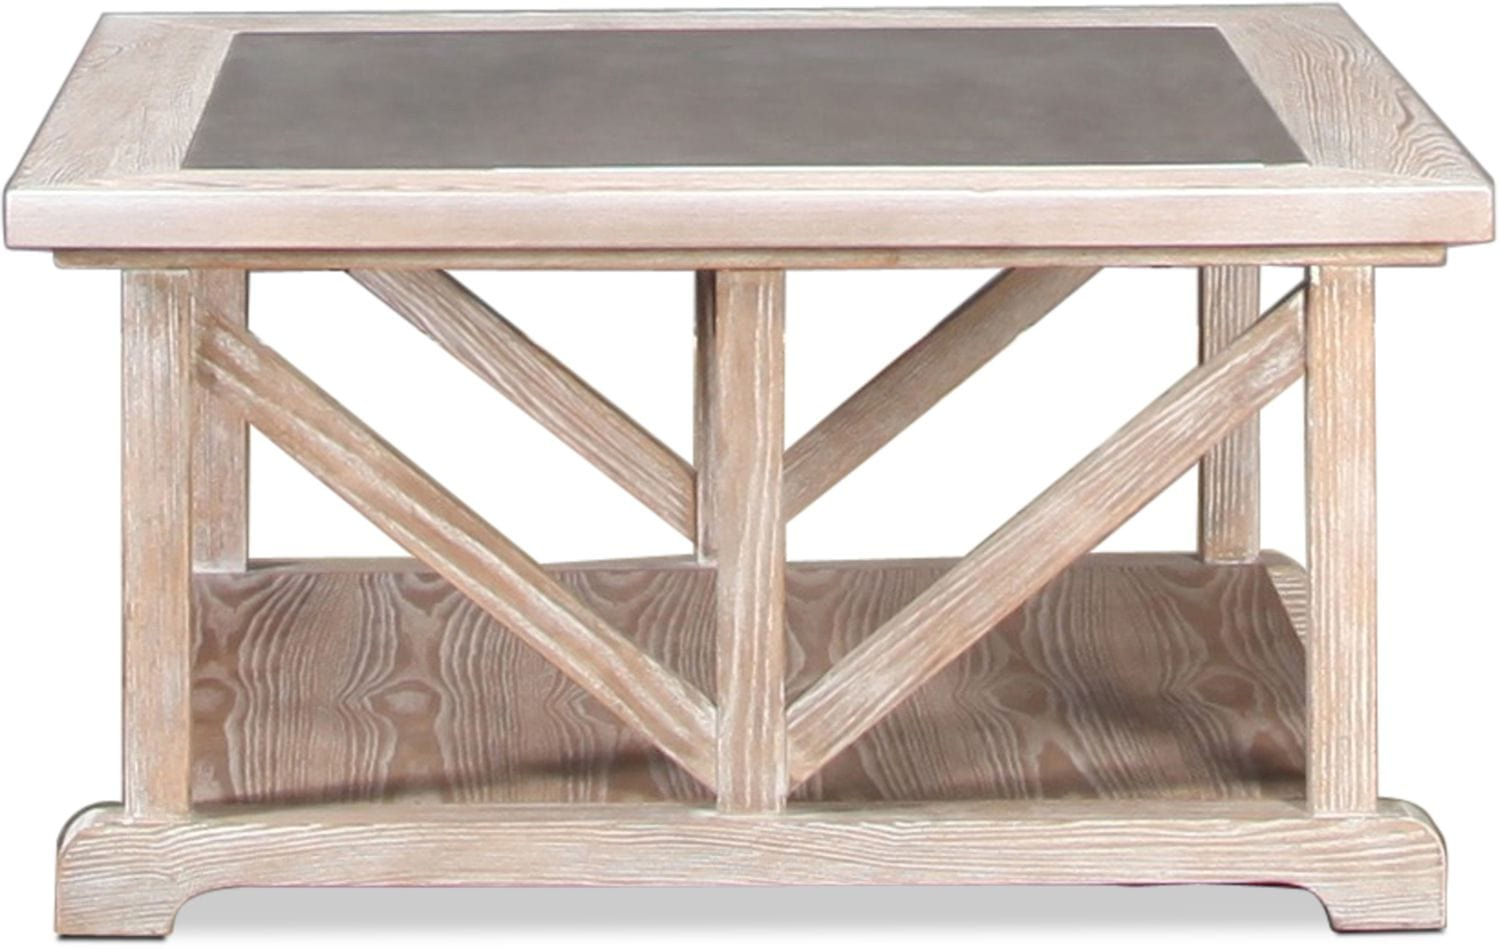 Brixton Coffee Table - Driftwood Gray